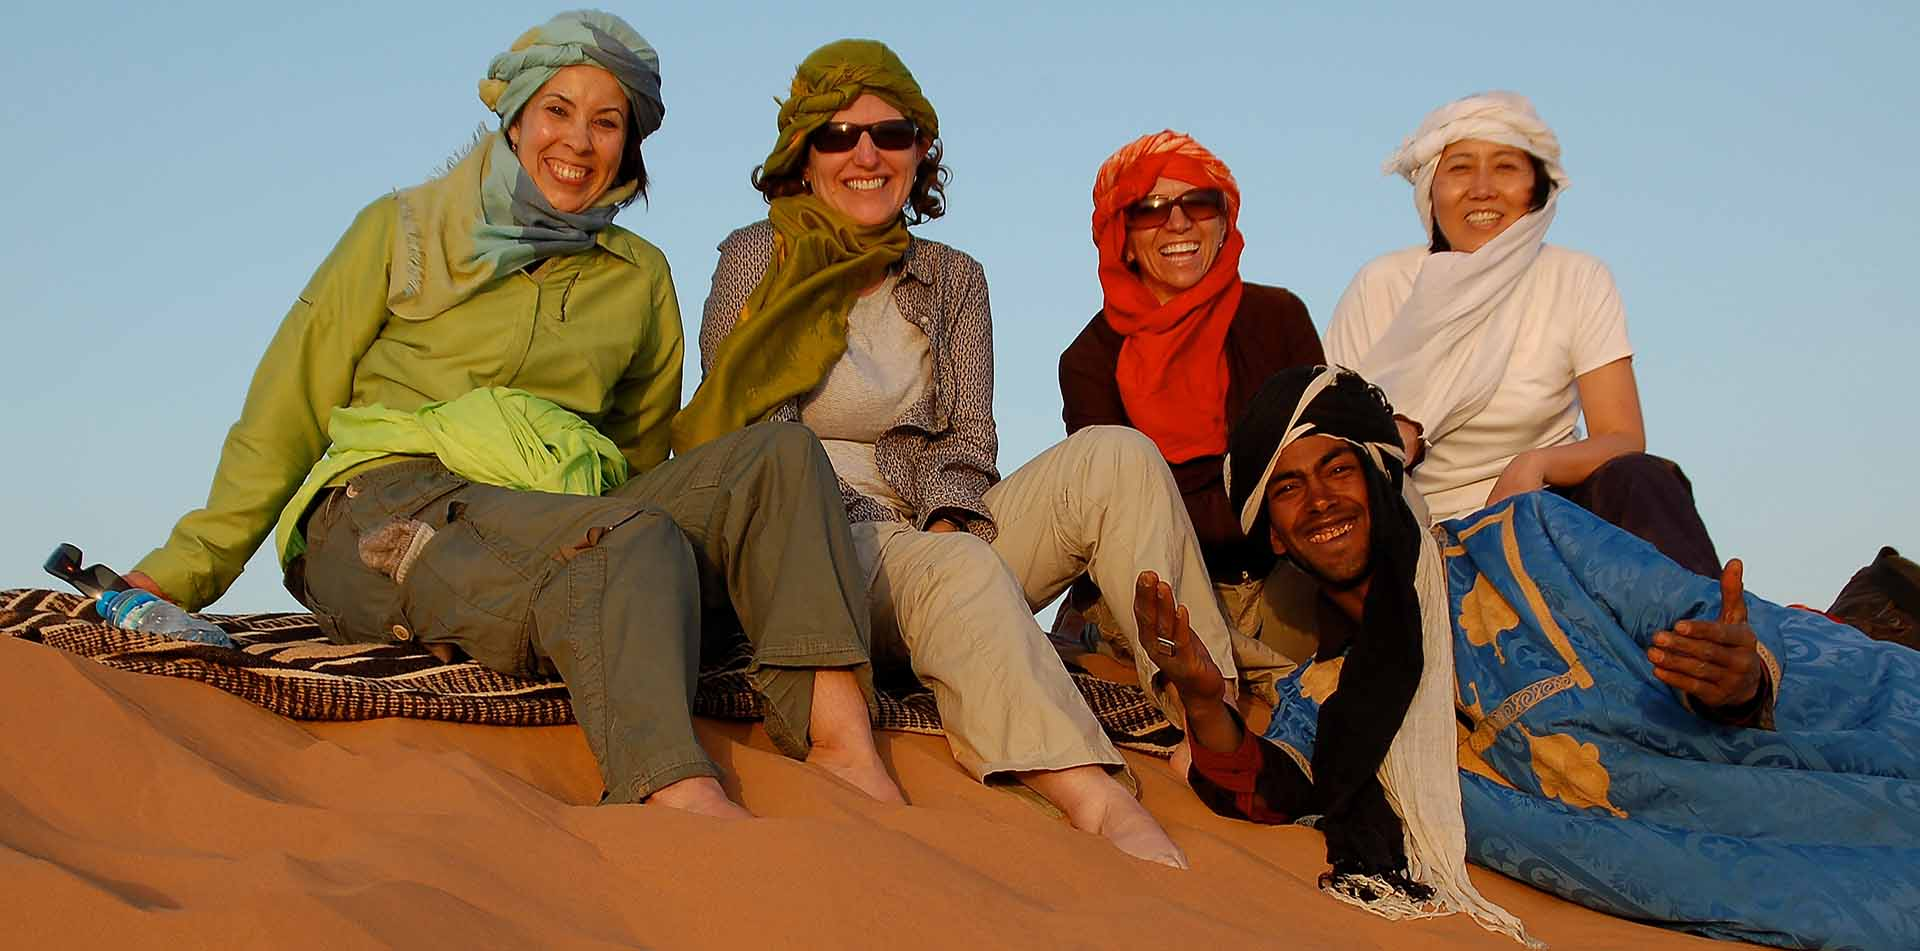 Classic Journeys Guide Saida with Travelers on Sand Dune in Morocco